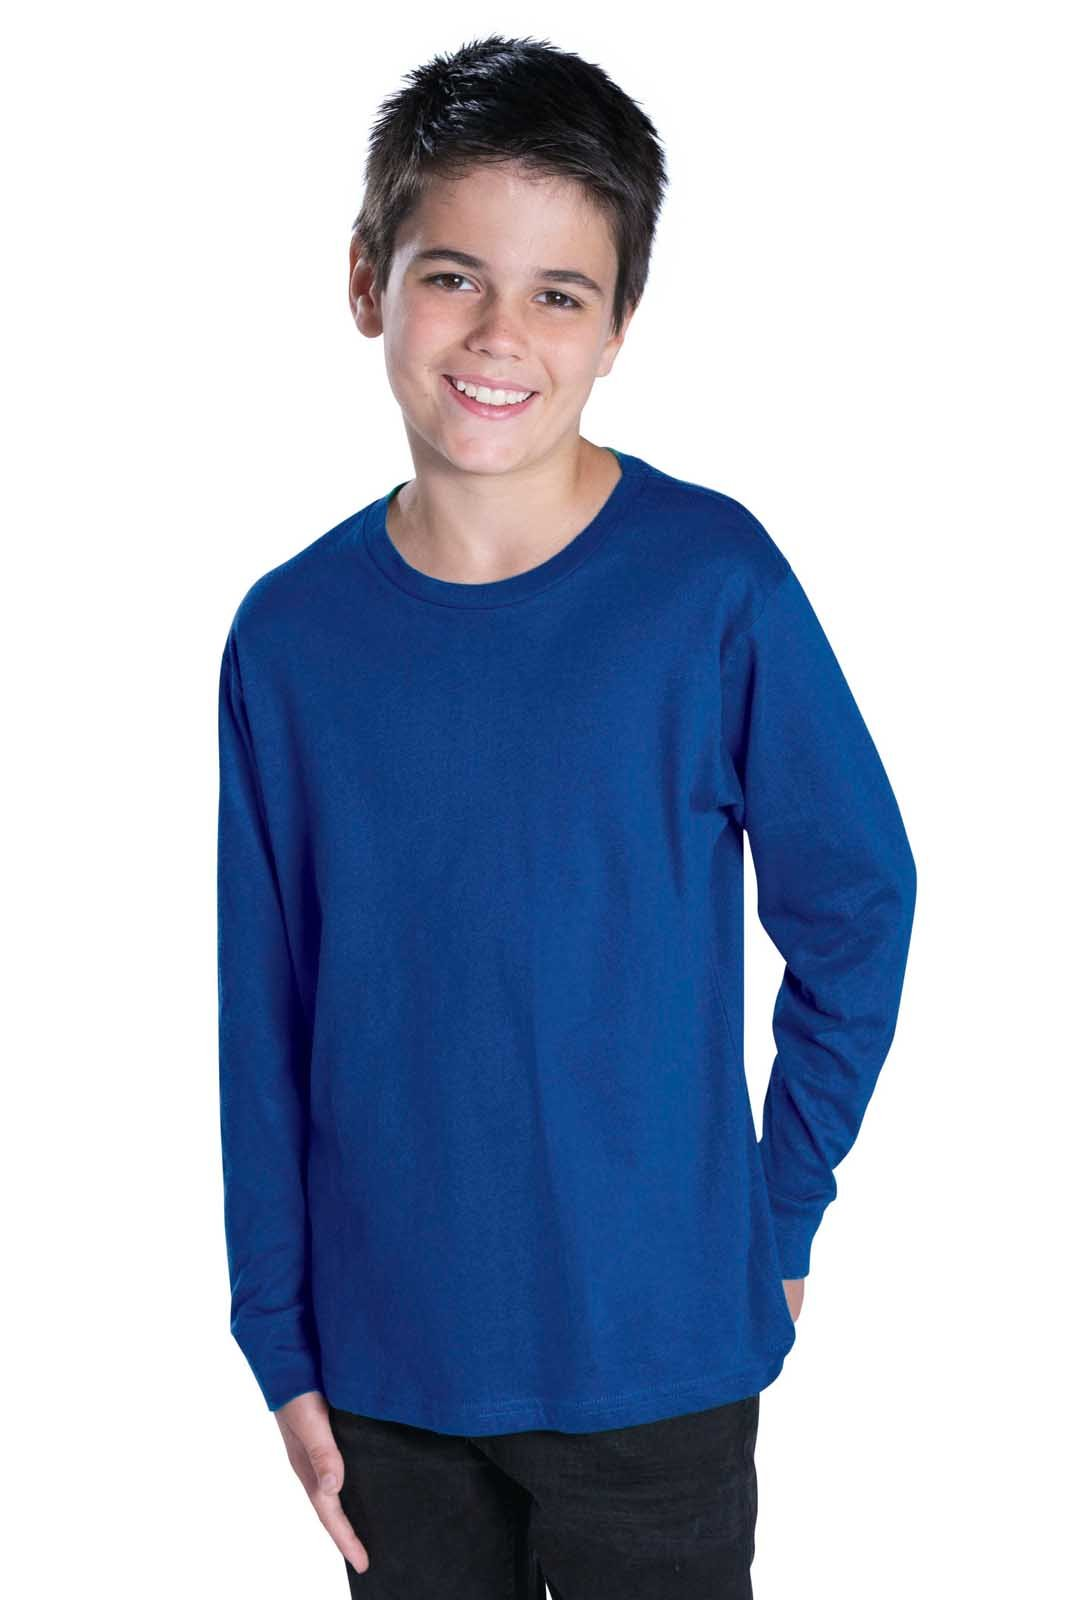 LAT Youth 100% Cotton Jersey Crew Neck Long Sleeve Tee (Navy, Large)